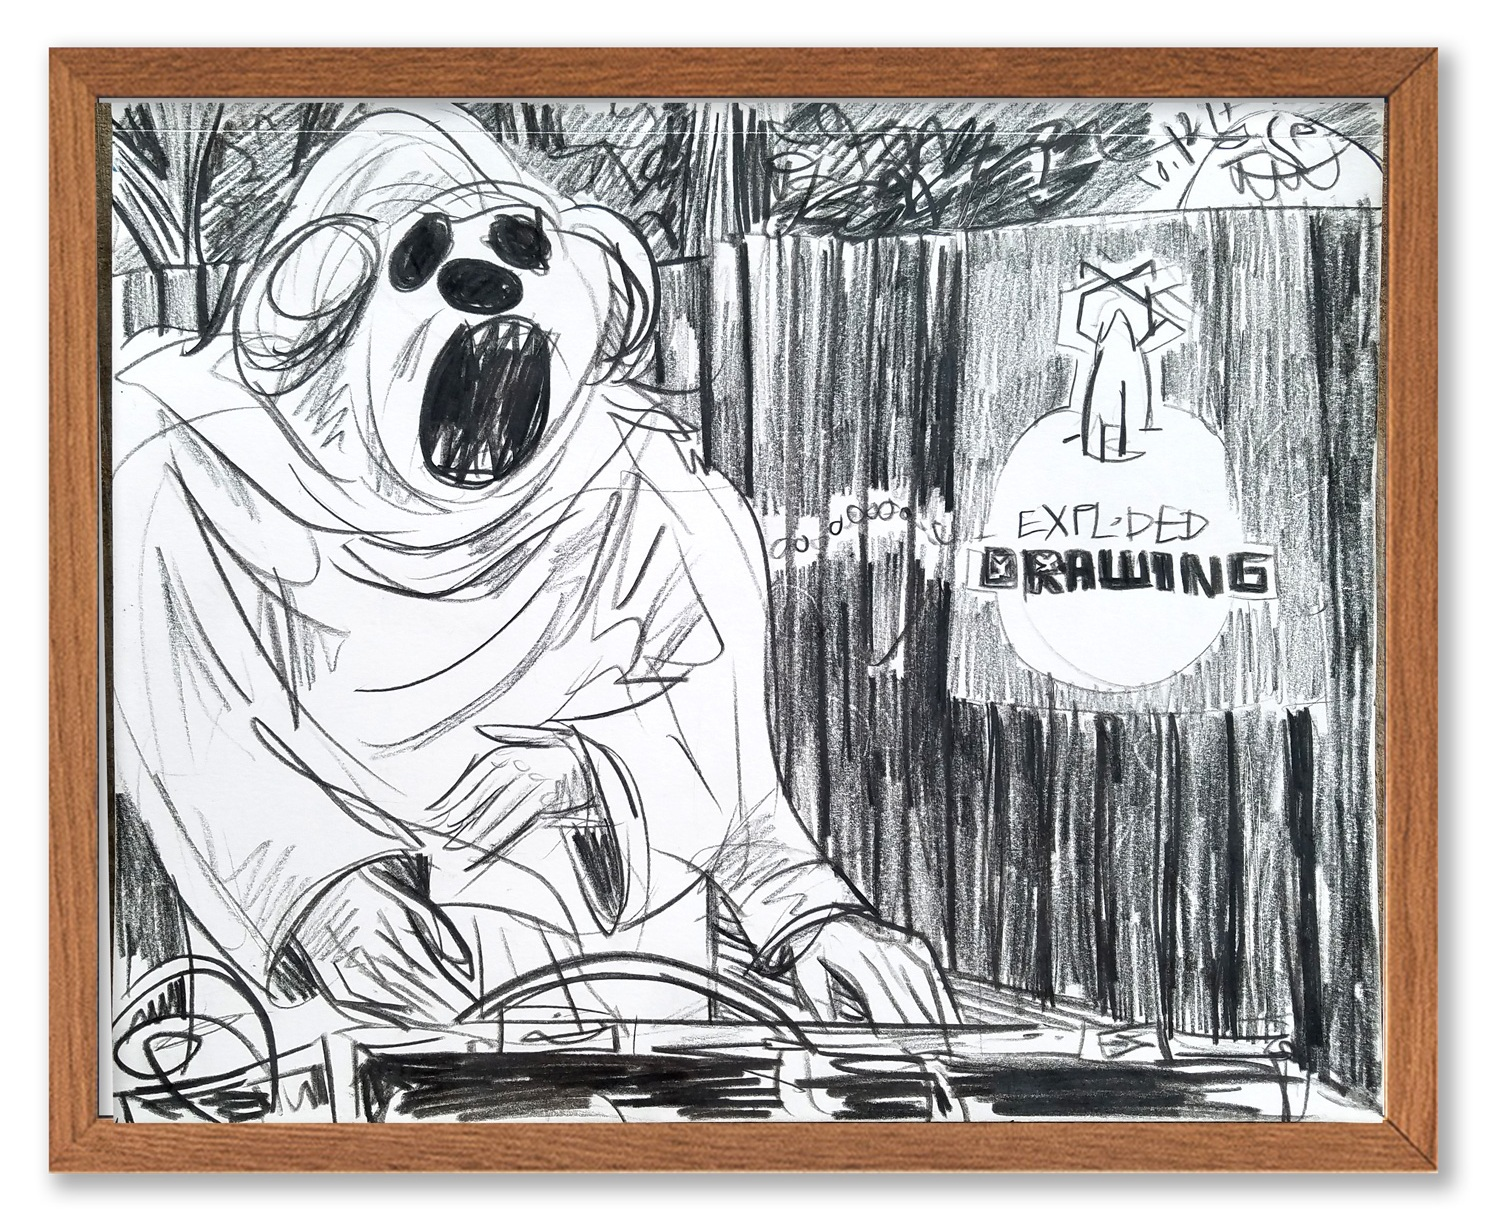 Butcher Bear of Exploded Drawing at Empire.  Buy>